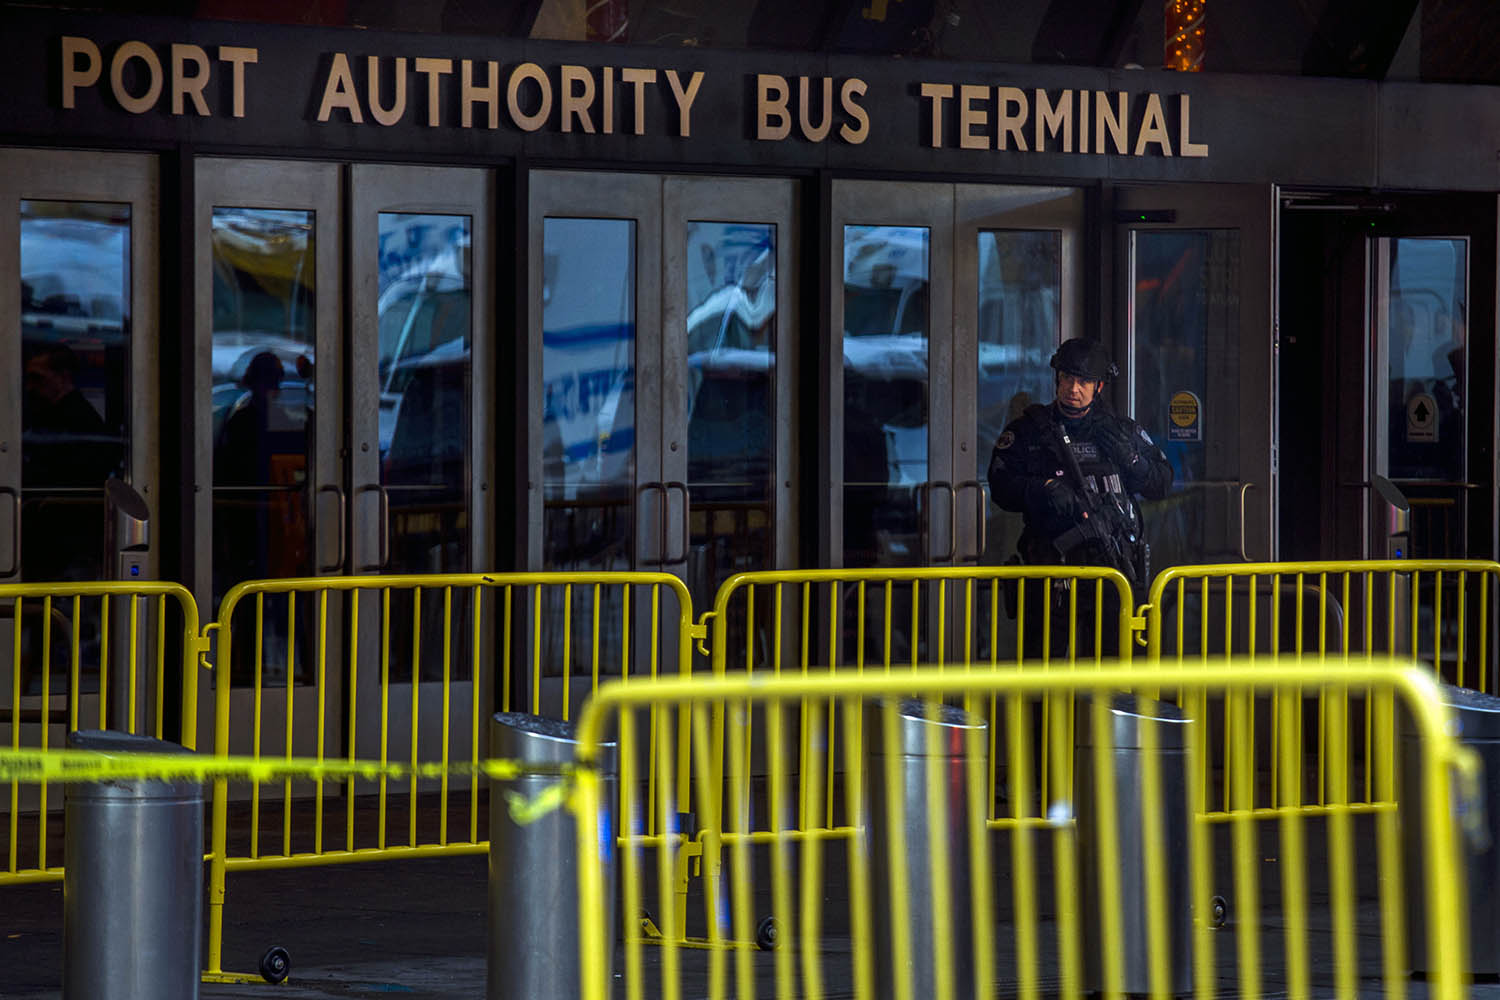 "<div class=""meta image-caption""><div class=""origin-logo origin-image ap""><span>AP</span></div><span class=""caption-text"">A police officer stands guard in front of Port Authority Bus Terminal as law enforcement respond to a report of an explosion near Times Square on Monday, Dec 11, 2017, in New York. (AP Photo/Andres Kudacki)</span></div>"